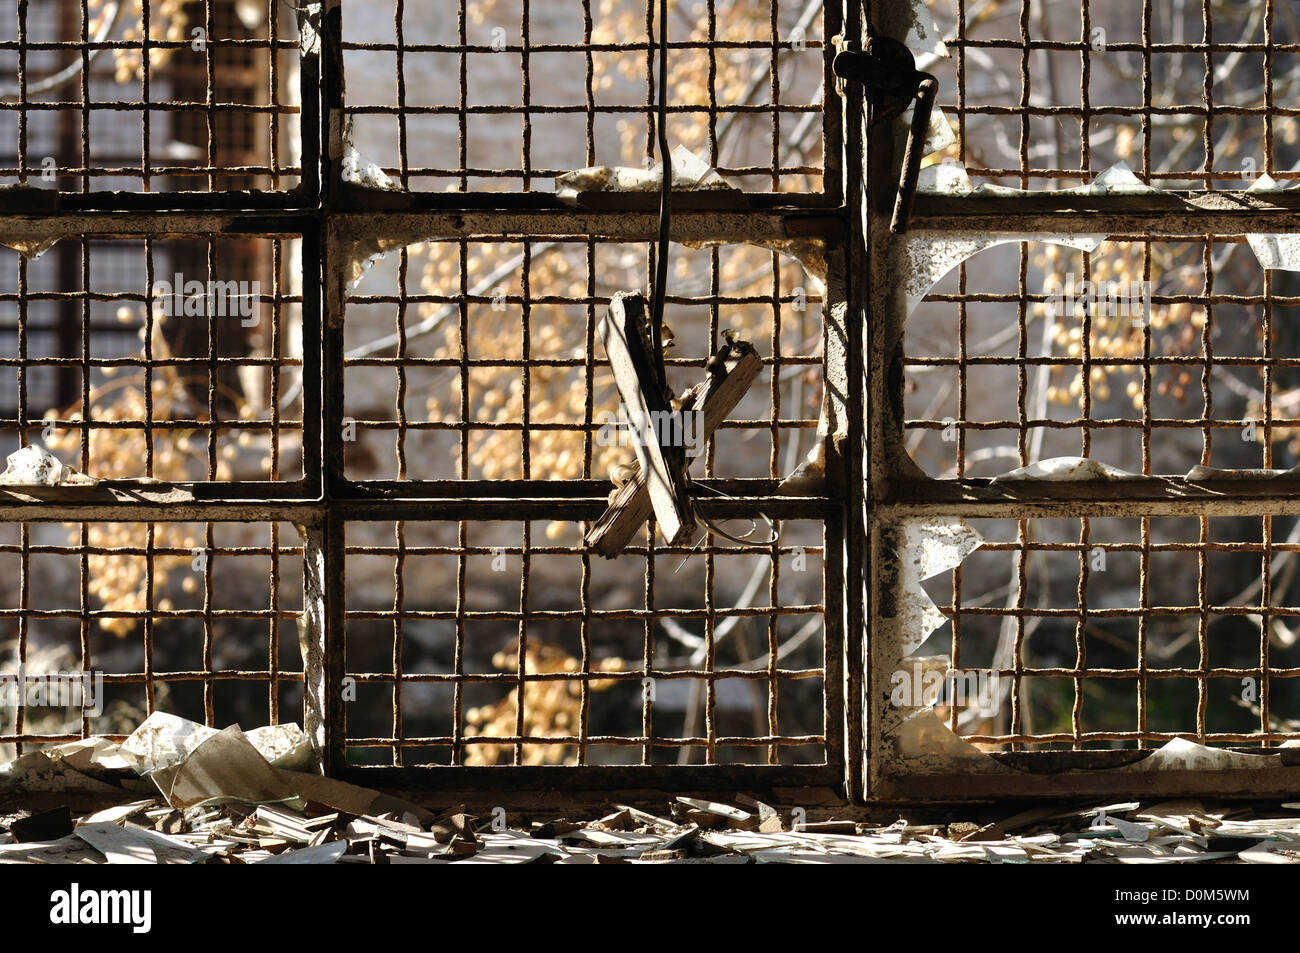 Broken glass window and rusty wire mesh background in abandoned warehouse. - Stock Image